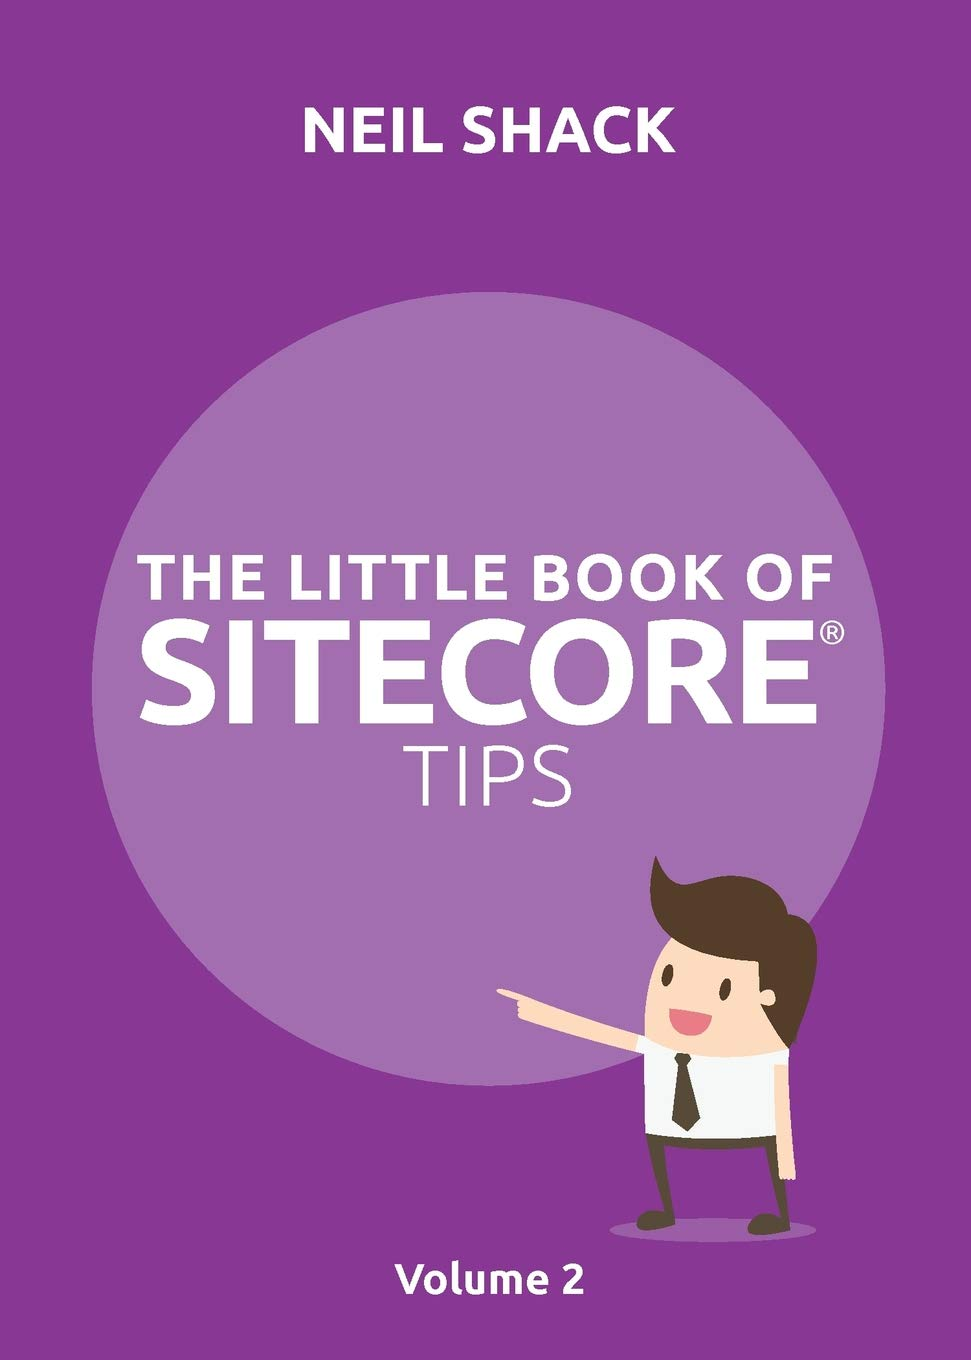 The Little Book of Sitecore(r) Tips: Volume 2 Paperback – June 11, 2018 Neil P Shack Coretec Digtal Ltd 1999774027